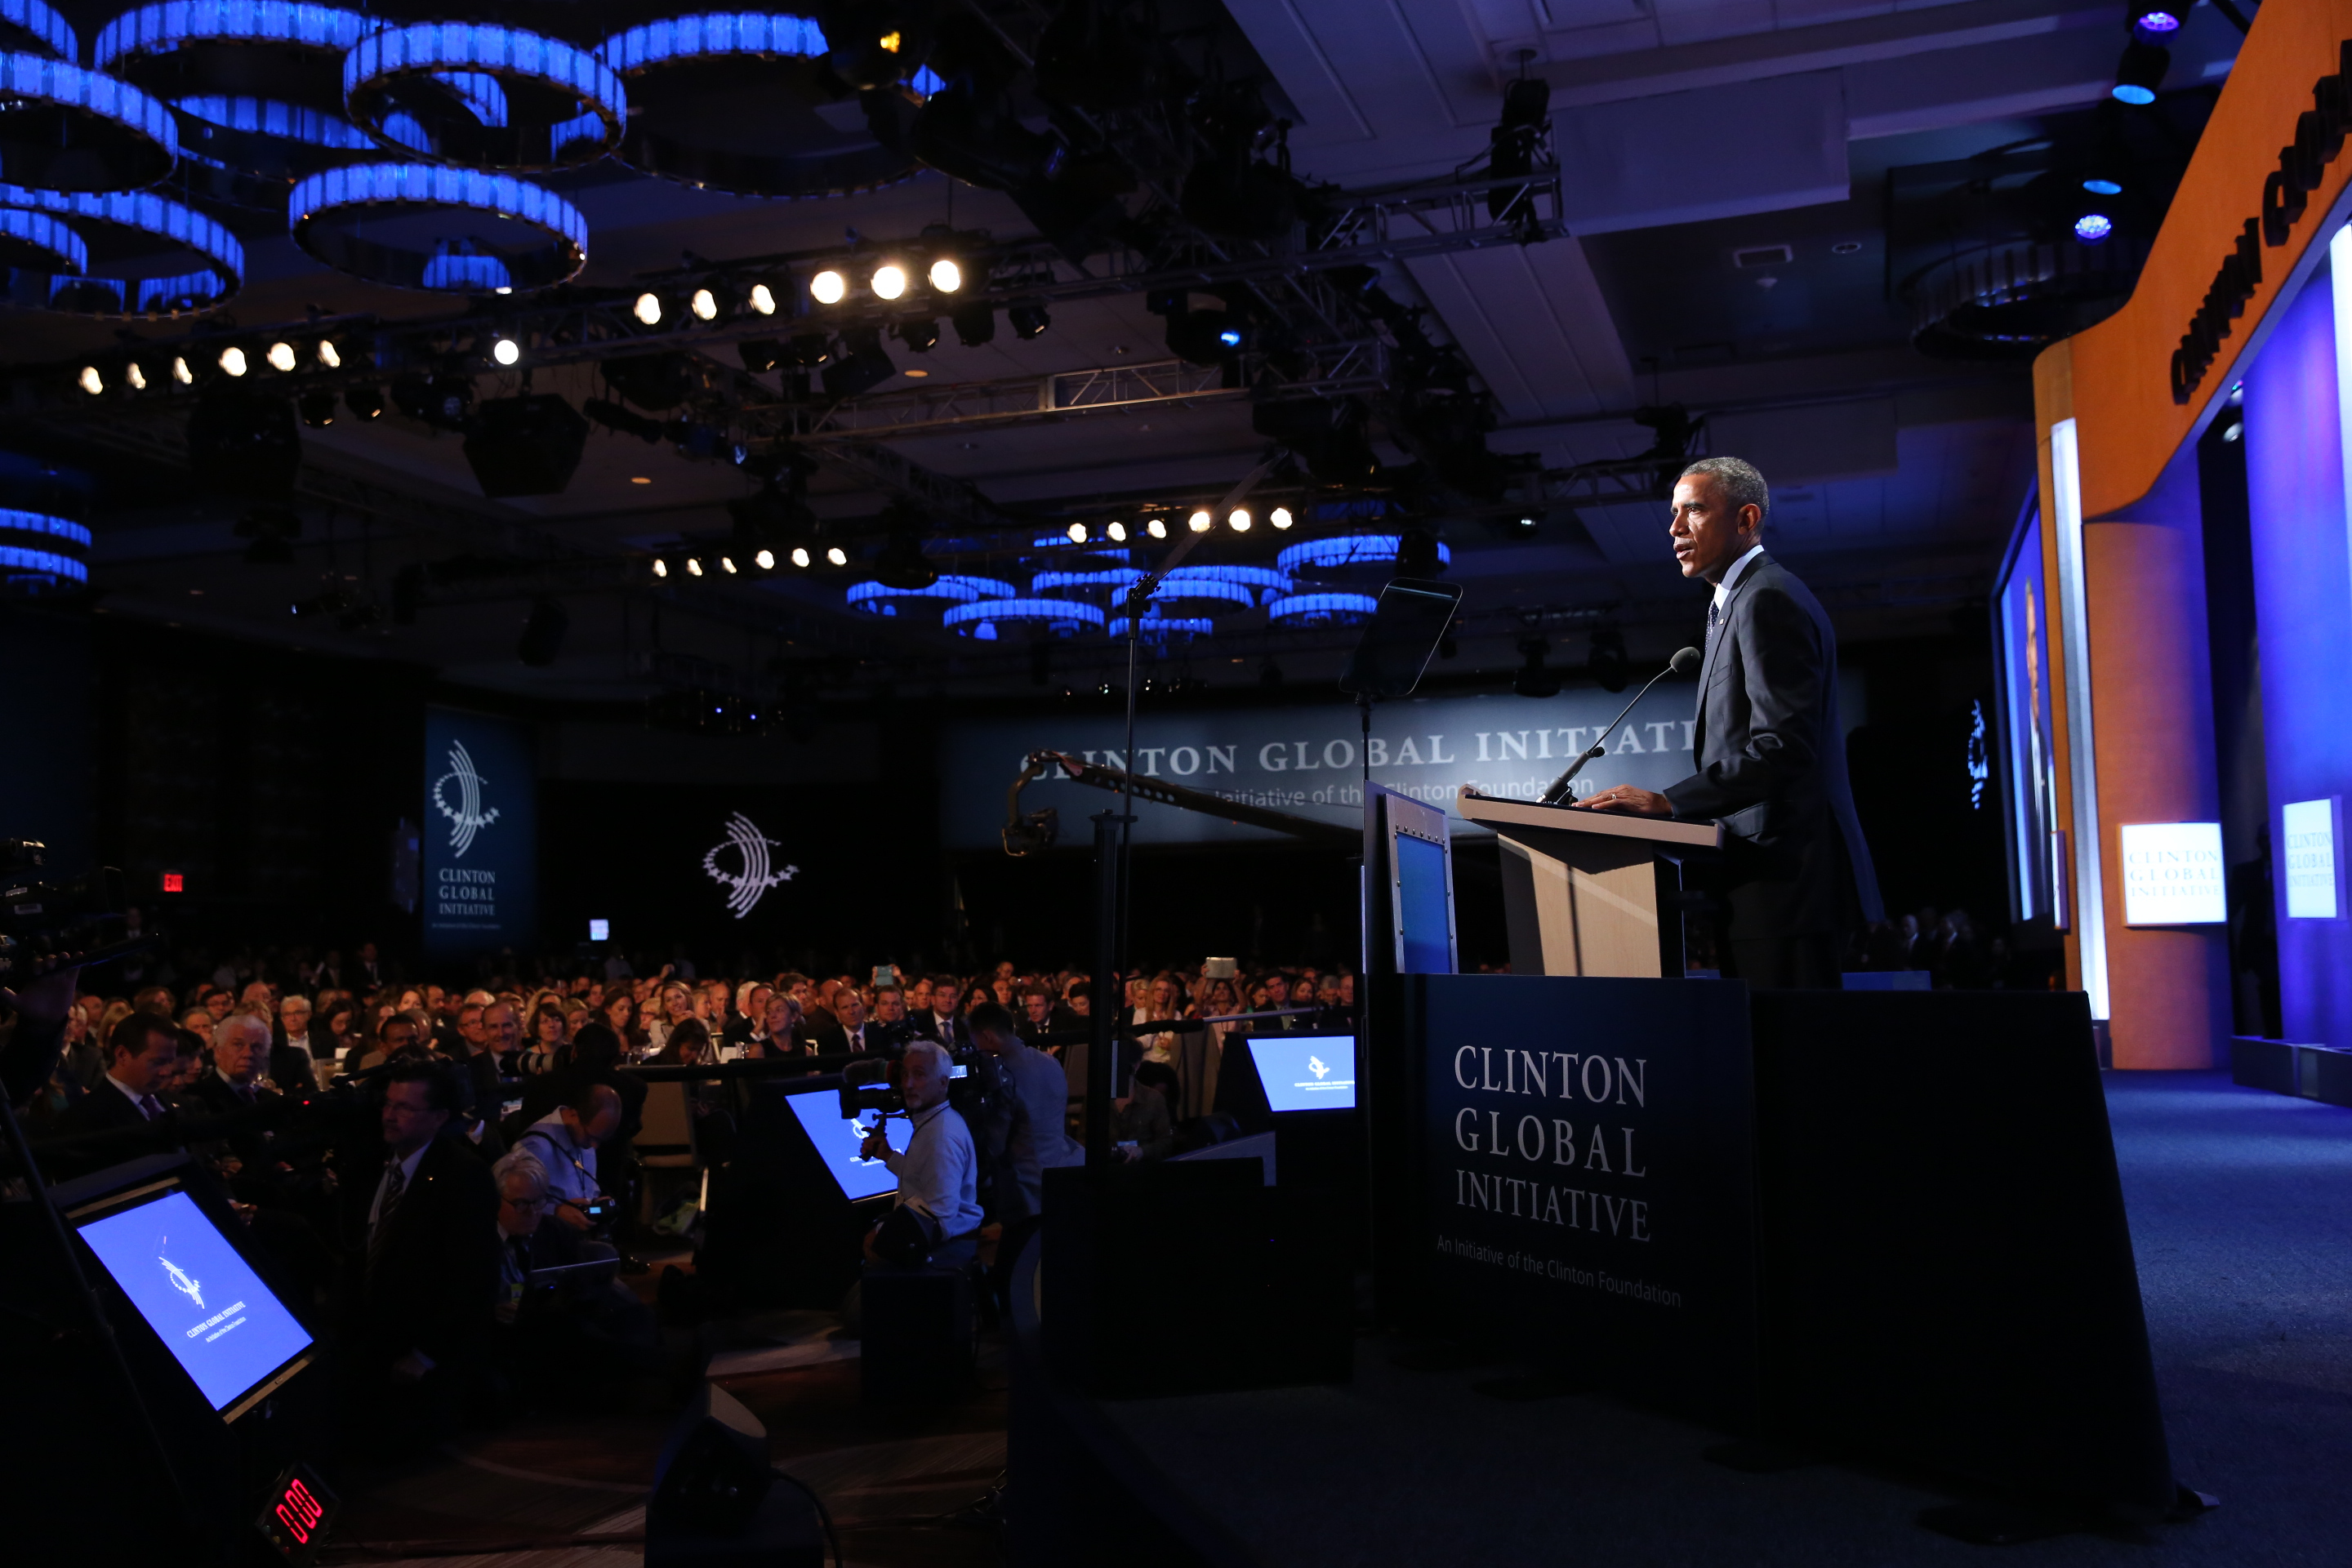 President Obama Delivers Remarks at the Clinton Global Initiative 2014